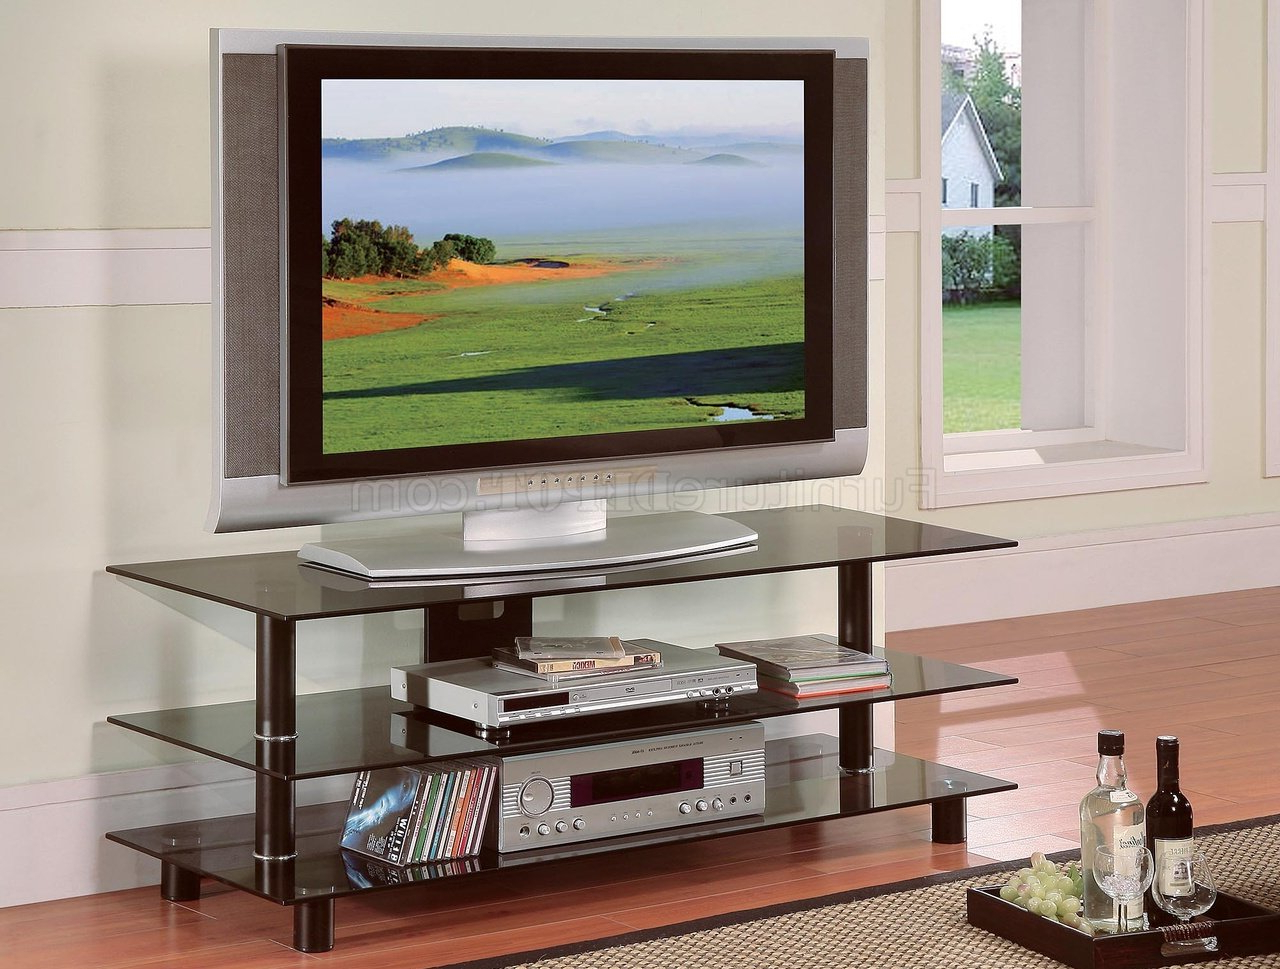 Black Metal & Glass Contemporary Tv Stand W/shelves Inside Tabletop Tv Stands Base With Black Metal Tv Mount (View 4 of 20)